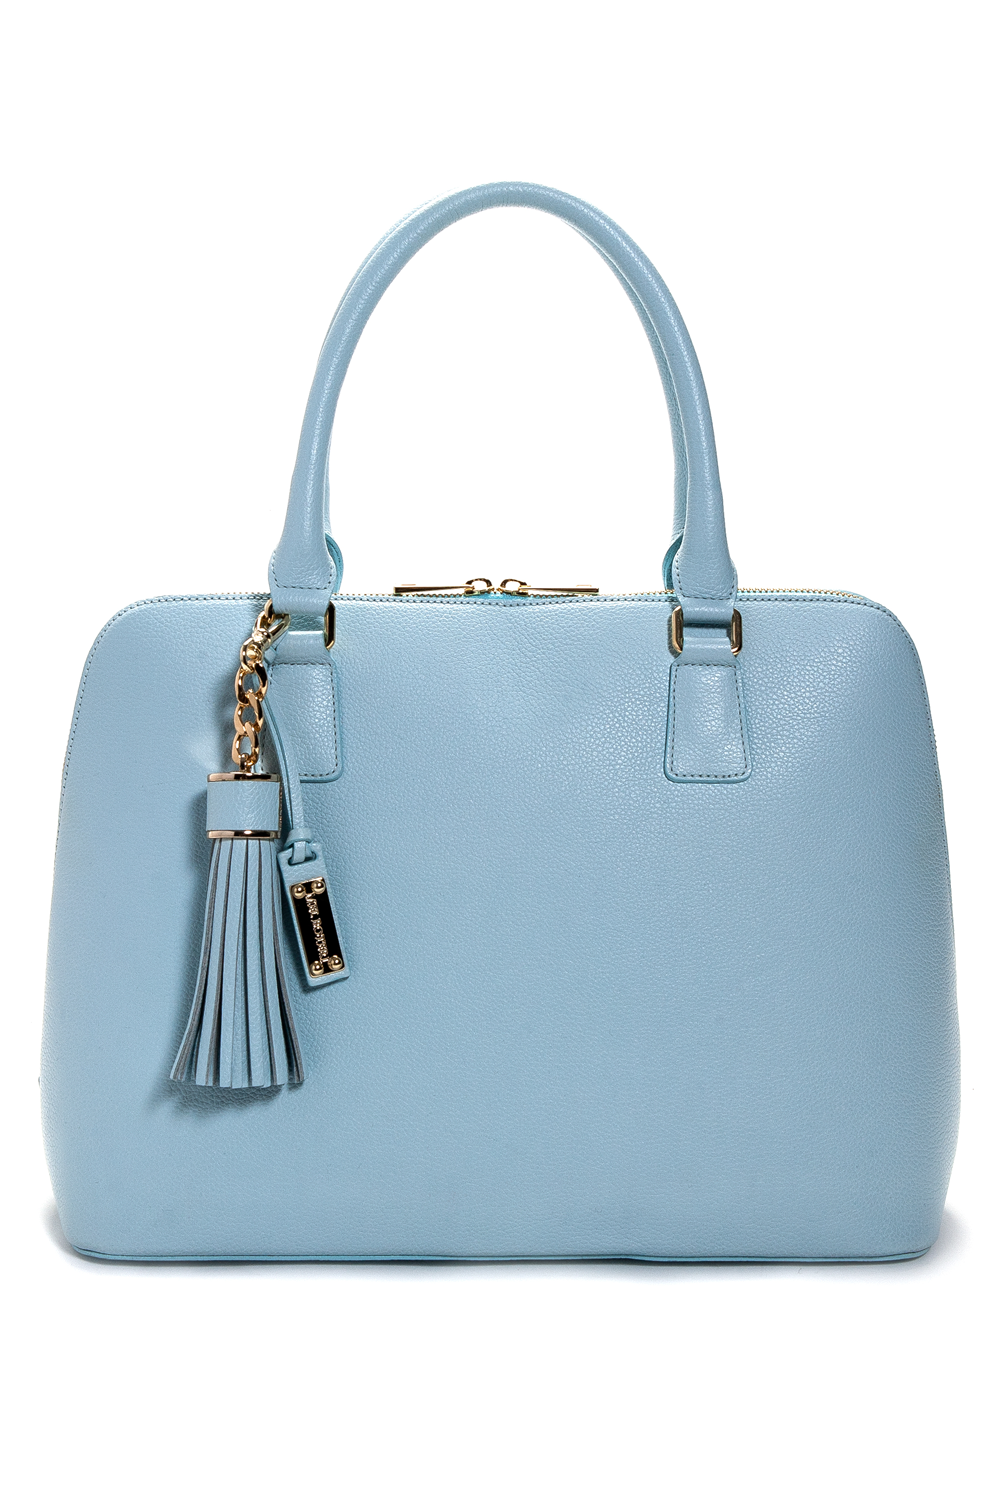 Mel Boteri | Serenity Blue Leather 'Watson' Tote | Front